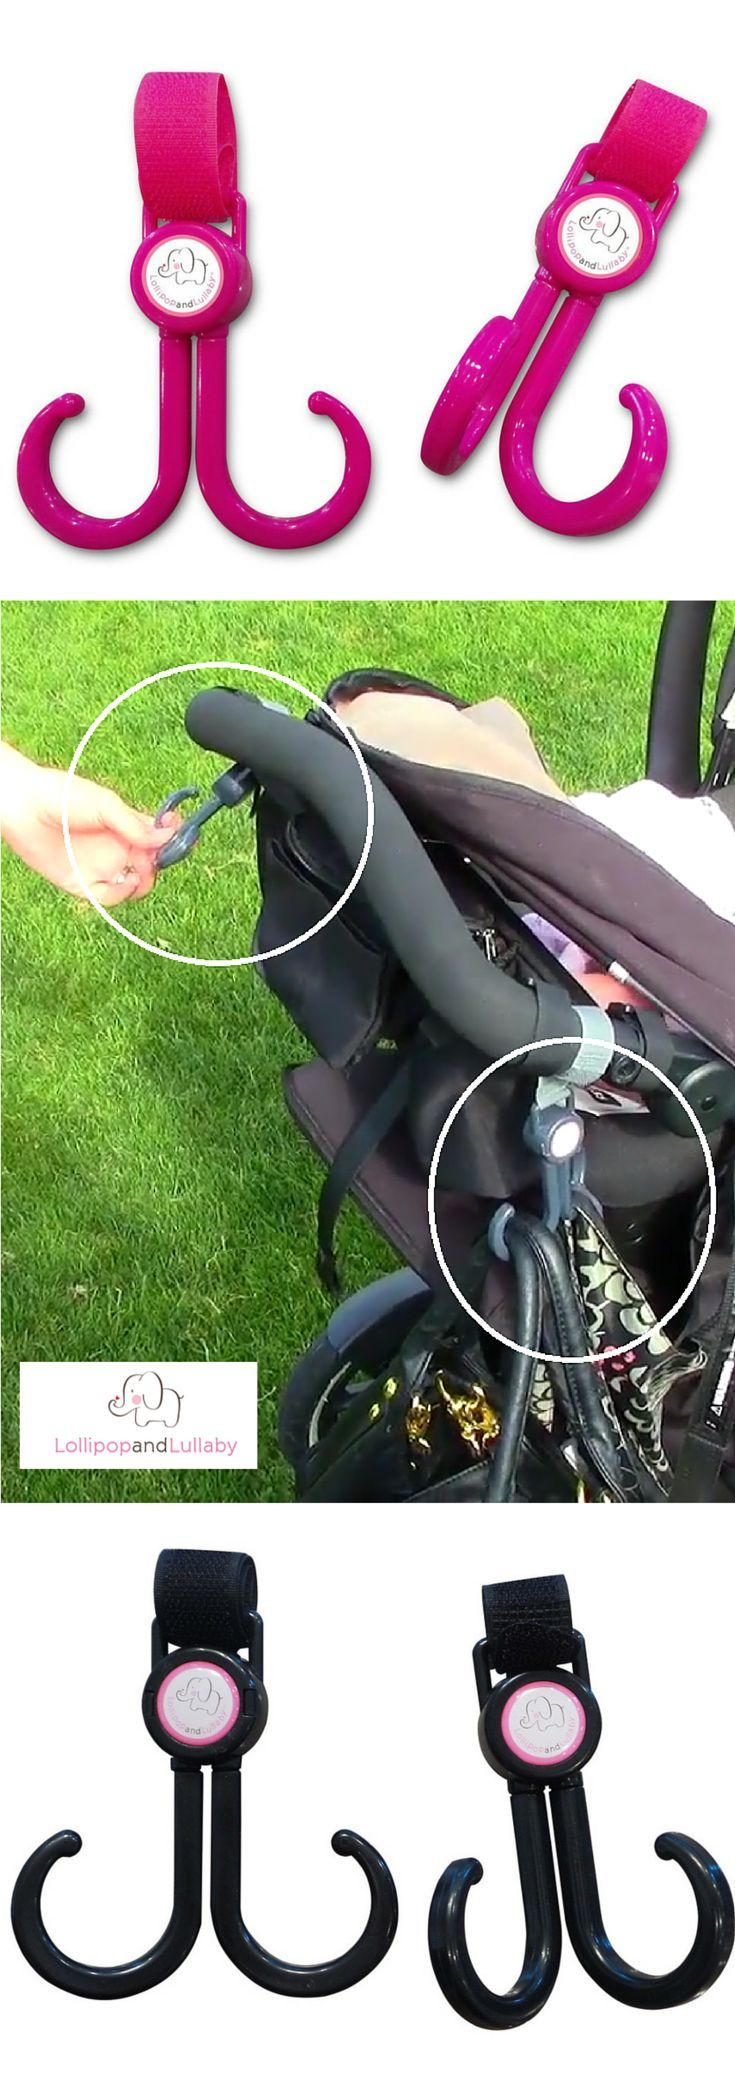 Grab Your Free Baby Stroller Hooks at http://lollipopandlullaby.com/collections/all-products/products/stroller-hooks-2-set-pack. If you're tired of lugging around diaper bags, or you just don't have the space under you baby stroller, then these hooks are ideal for you. Each hook carries 11lbs each. Make your life easier and lighter with The Dream Baby Stroller Hooks. You can grab your free pair today by using discount code STROLLERHOOKFREE. Limited quantities until January 31st, 2016.